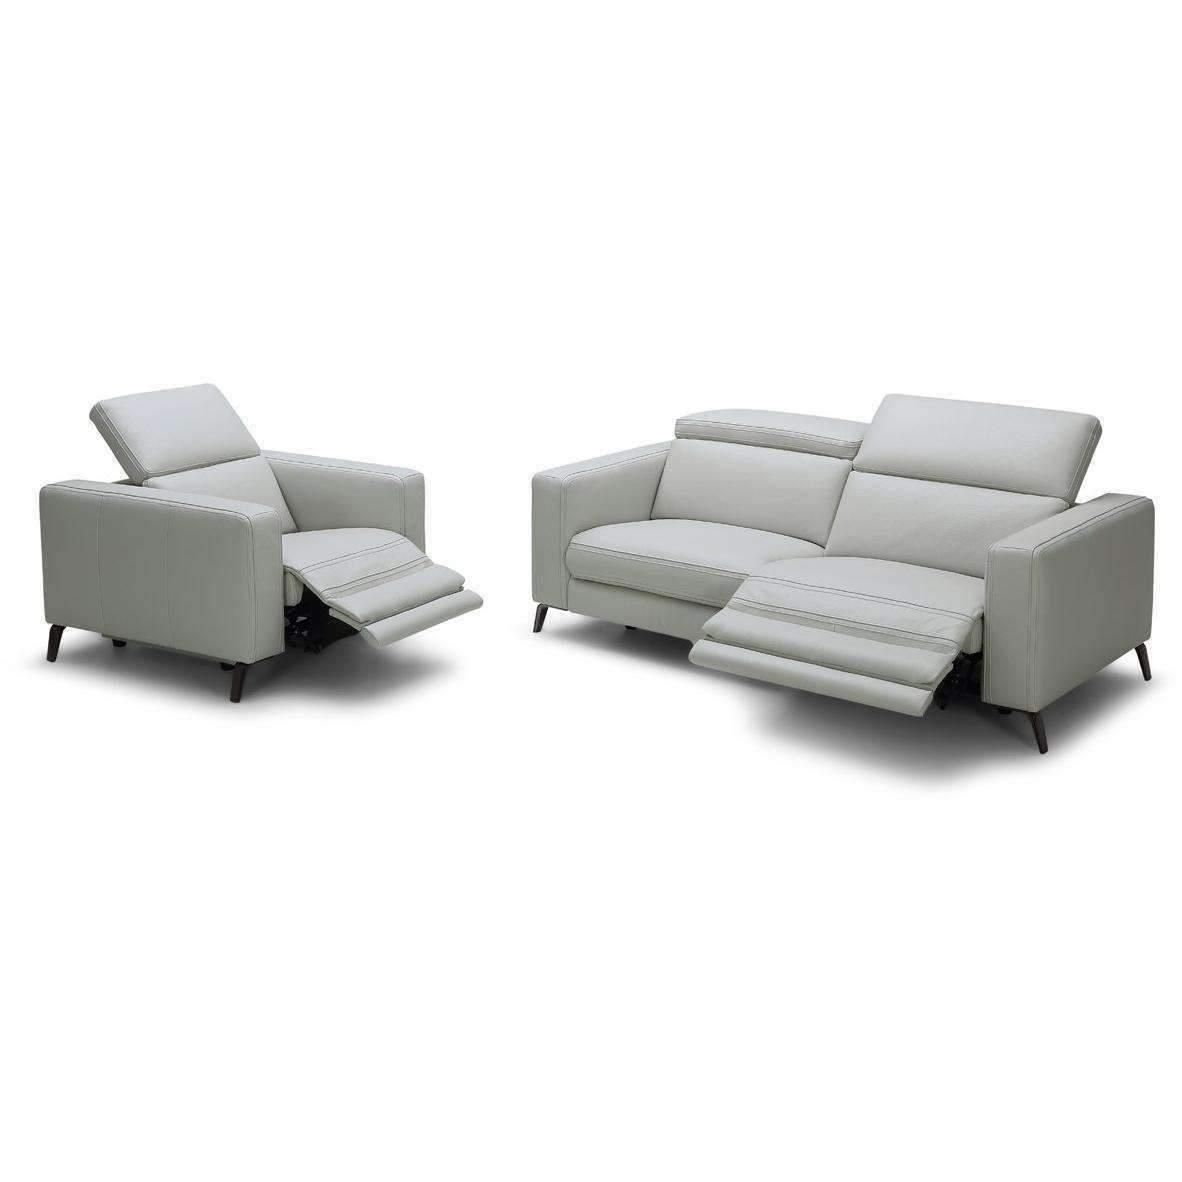 Awesome Divani Casa Roslyn Modern Grey Leather Sofa Set W Recliners Gmtry Best Dining Table And Chair Ideas Images Gmtryco